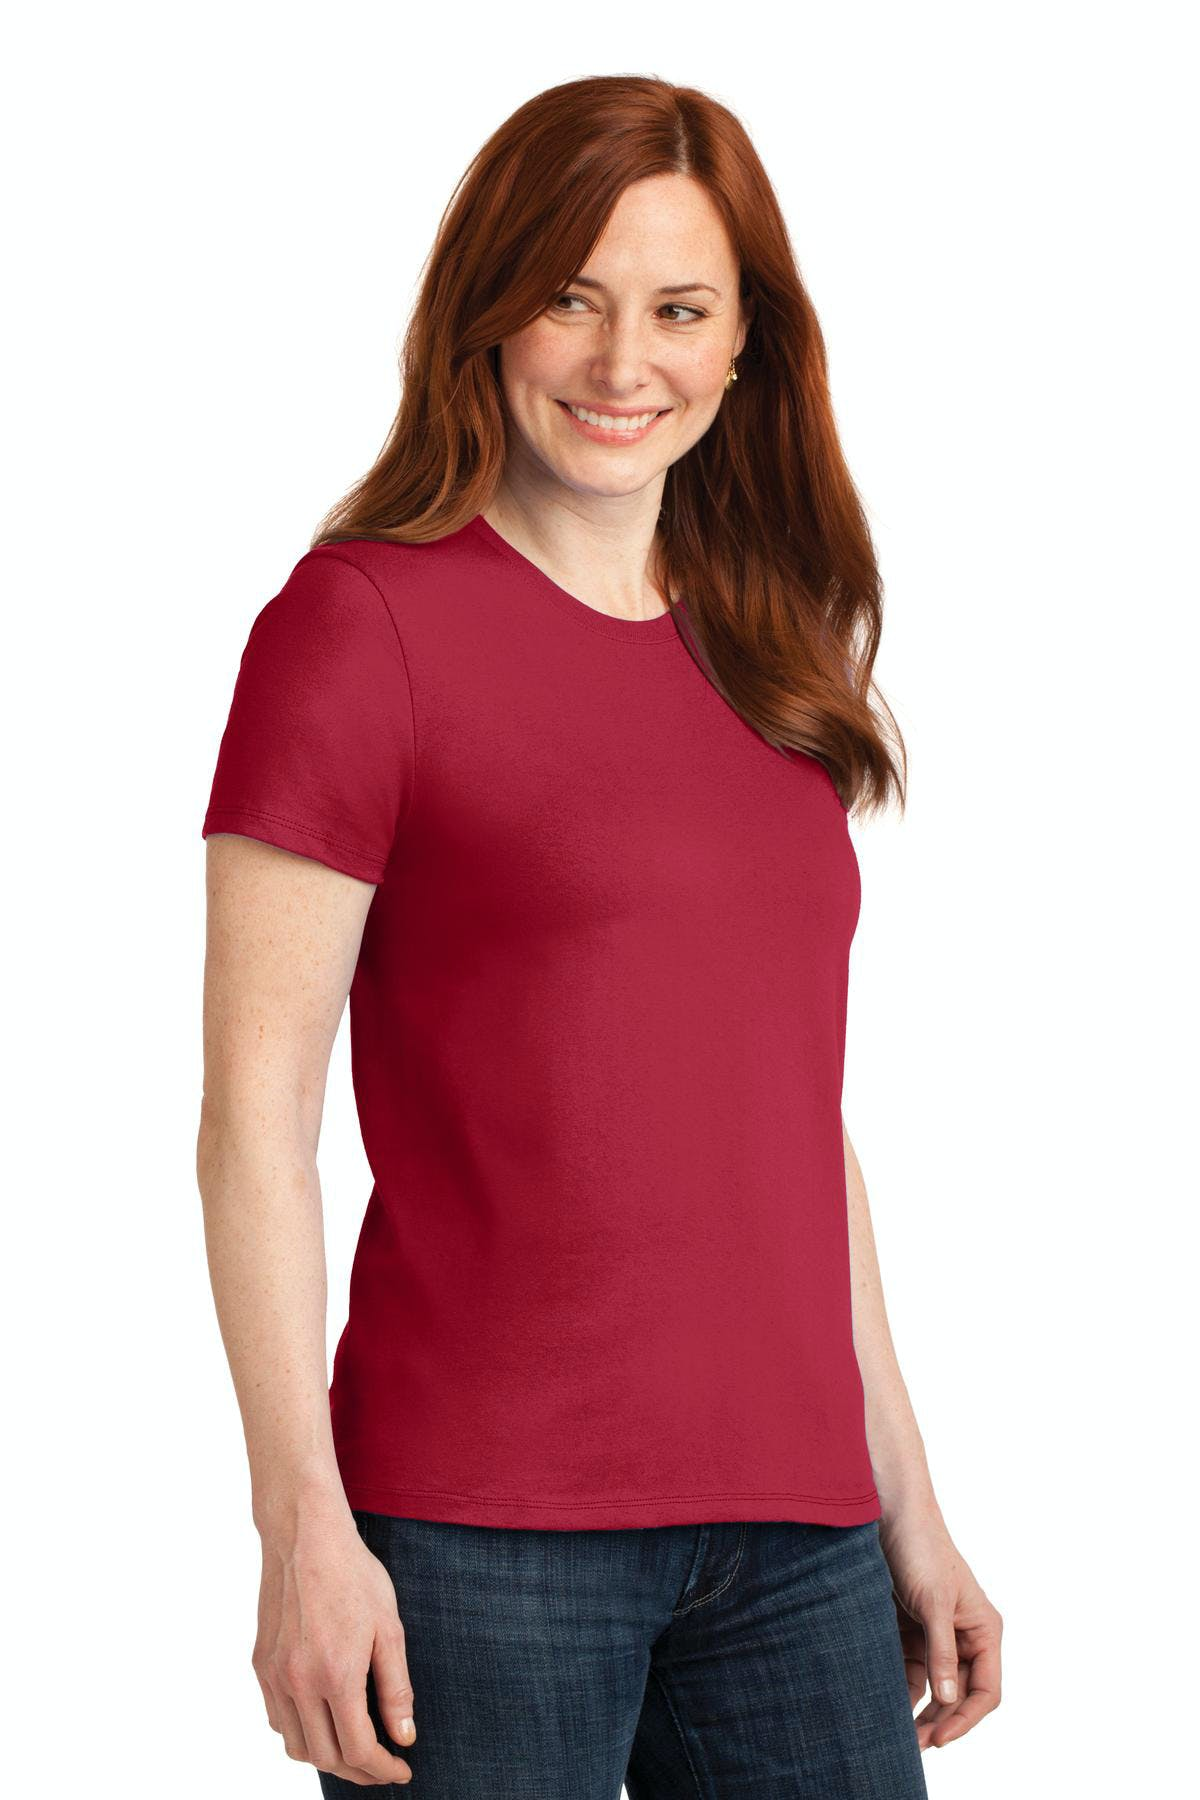 Port & Company® Ladies Core Blend Tee - sold by PRINT CITY GRAPHICS, INC